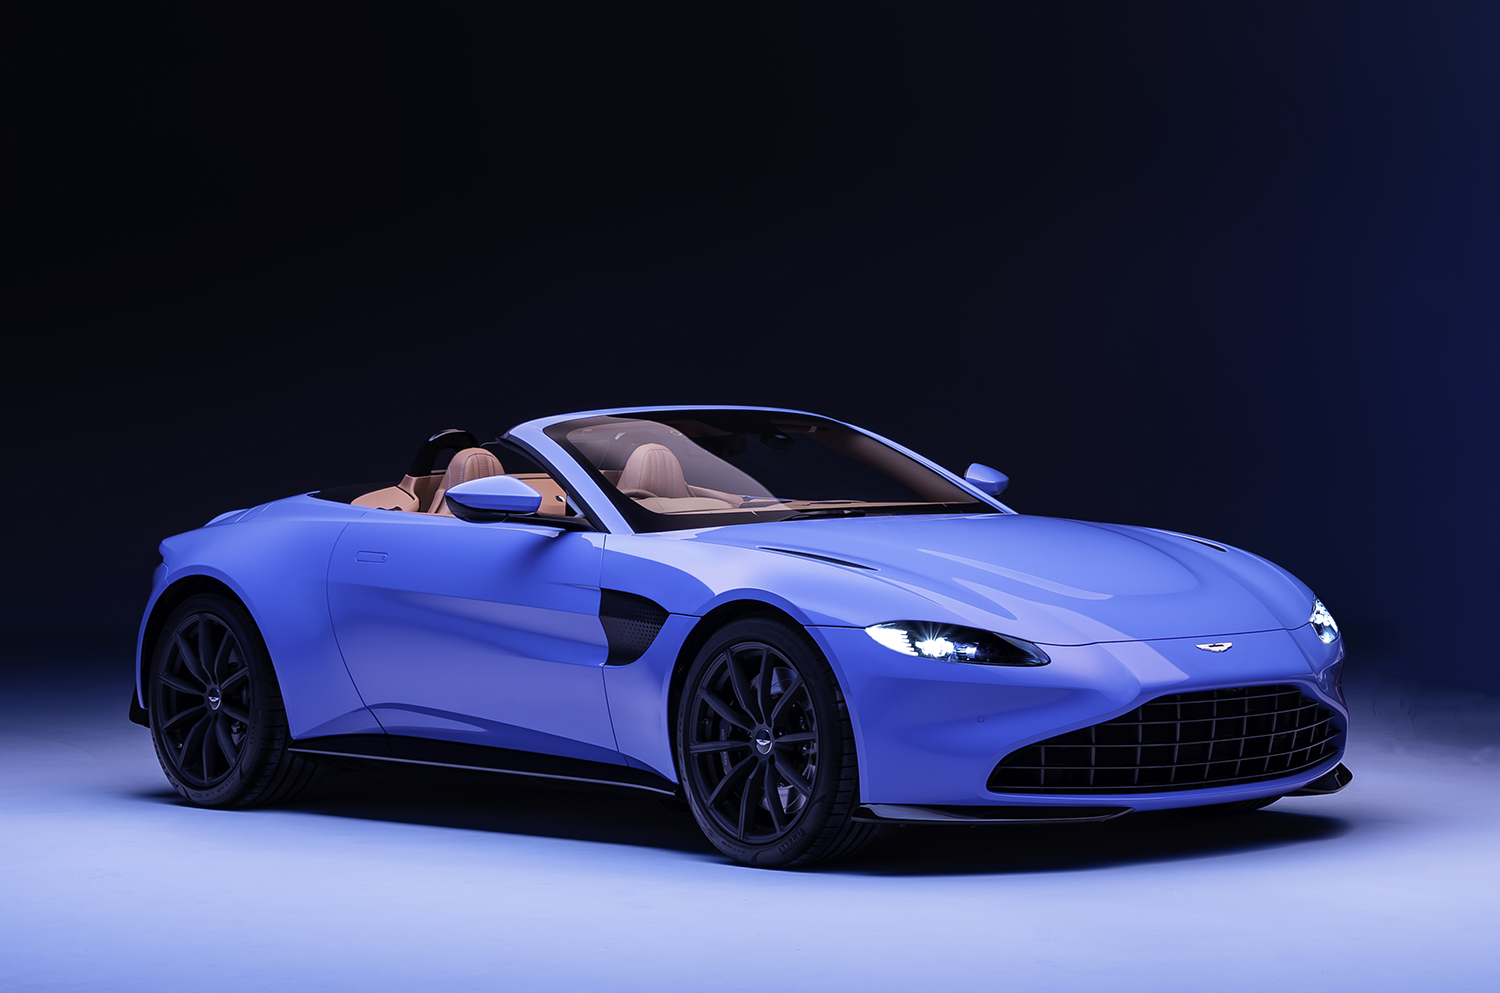 Aston Martin Reveals New Vantage Roadster For 2020